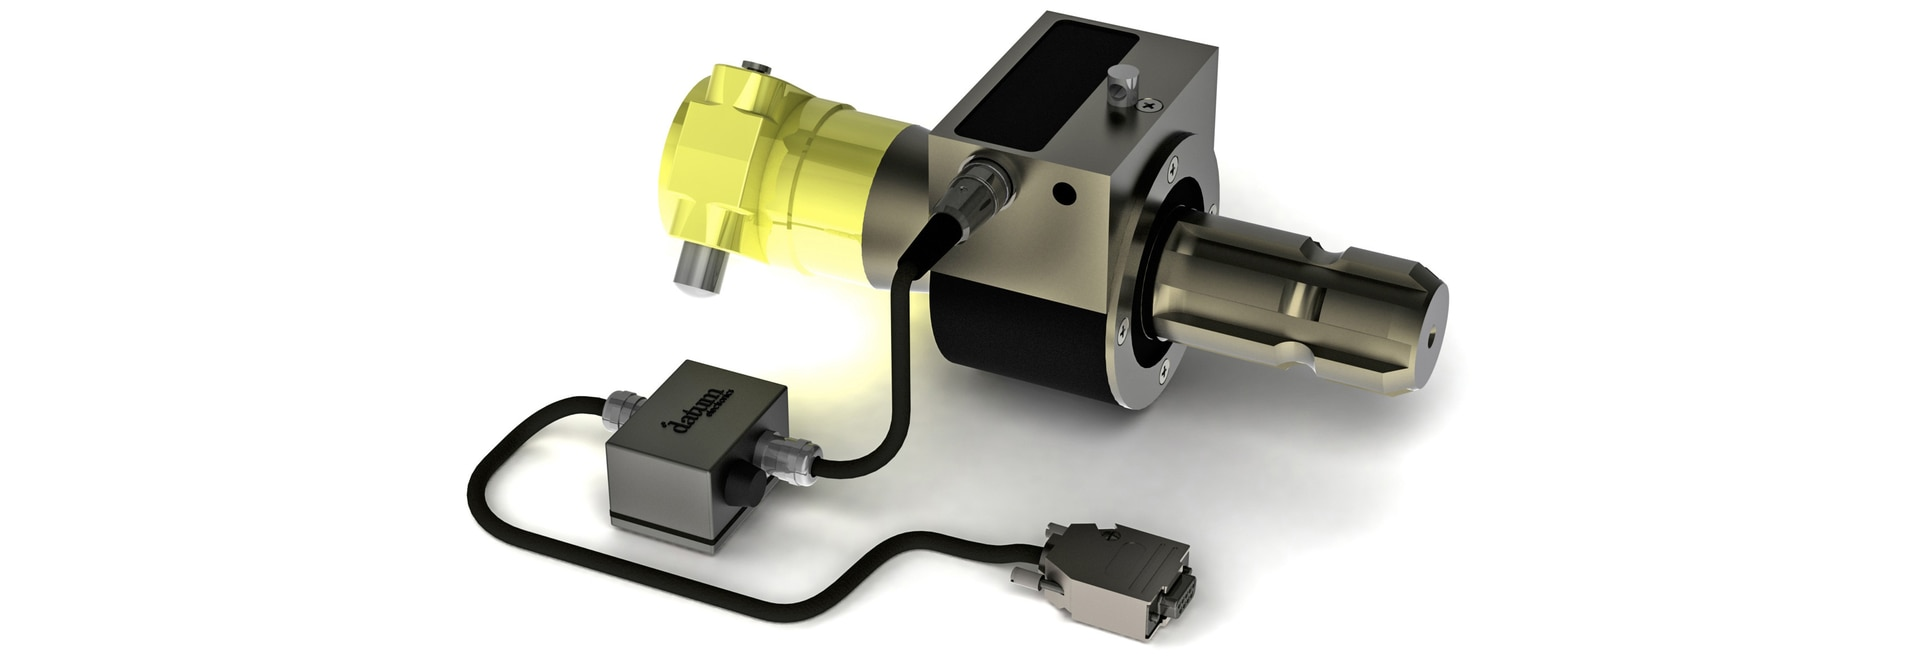 NEW PRODUCT DESIGN VERIFICATION BY MEASURING TORQUE OUTPUT OF A TRACTOR PTO SHAFT IN THE FIELD